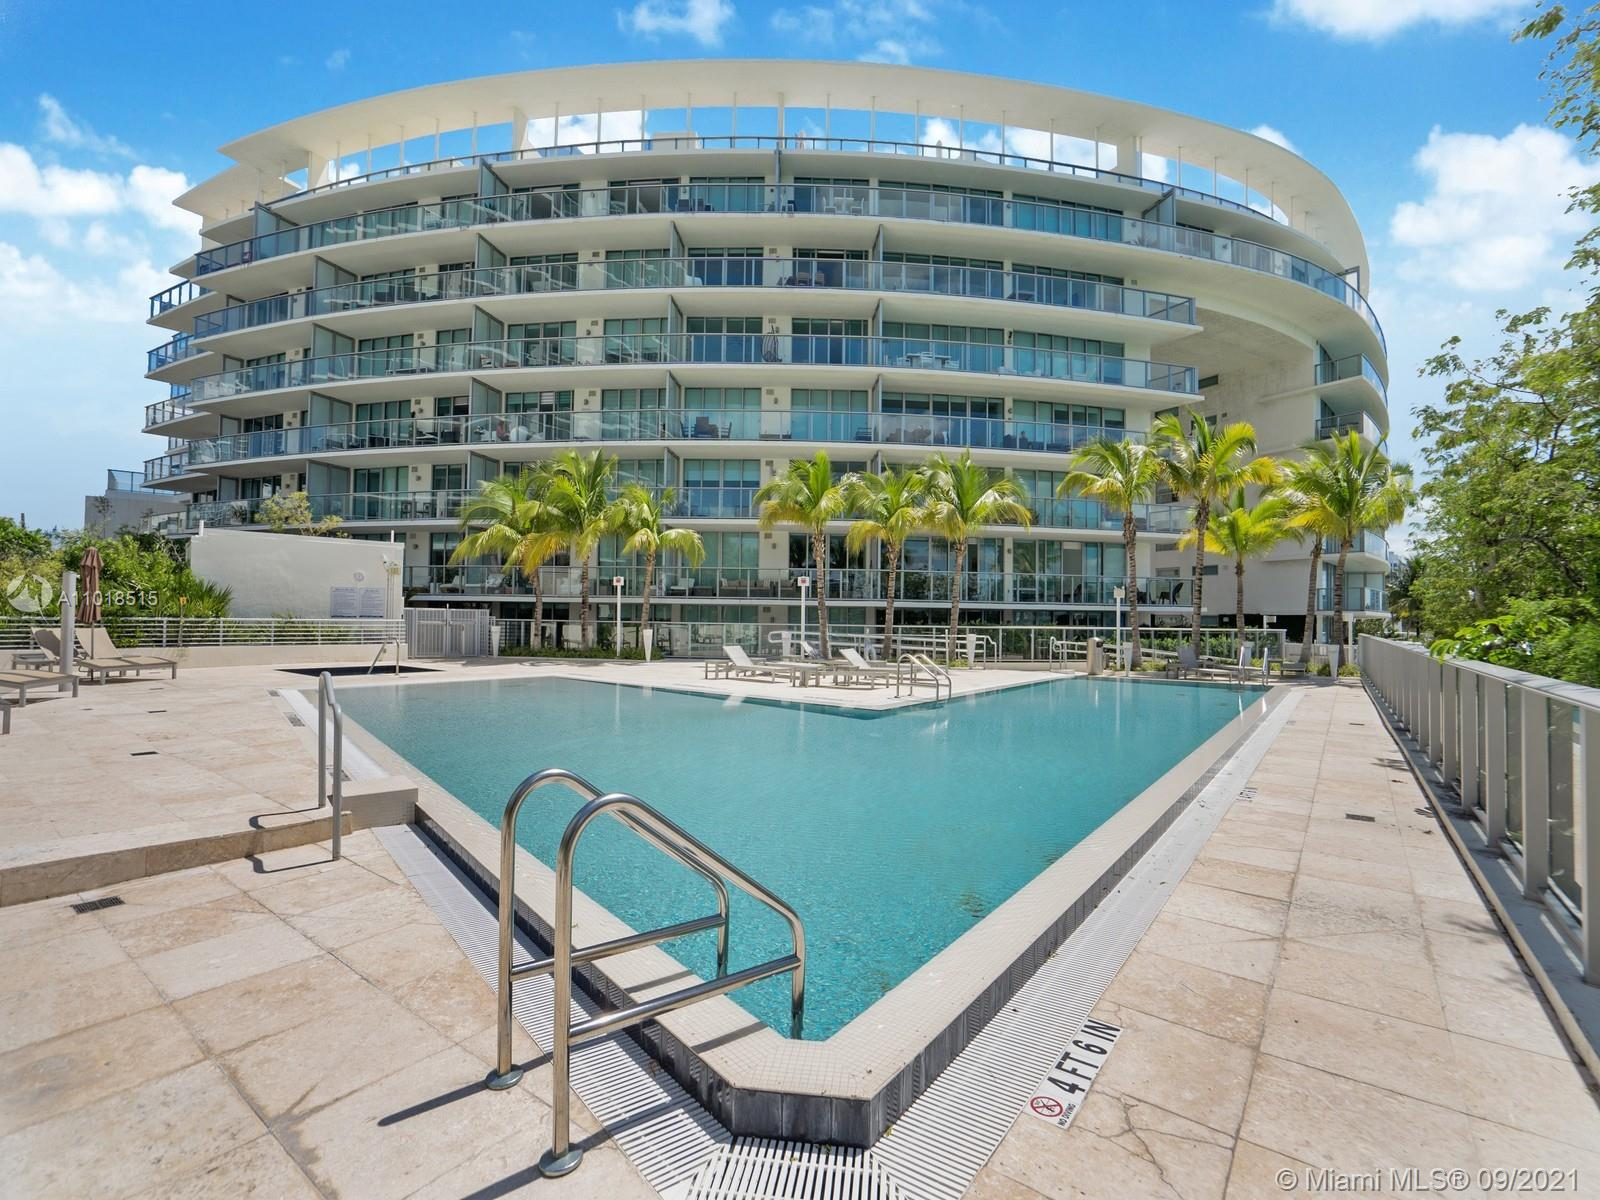 Peloro #315 - 6620 Indian Creek Dr #315, Miami Beach, FL 33141